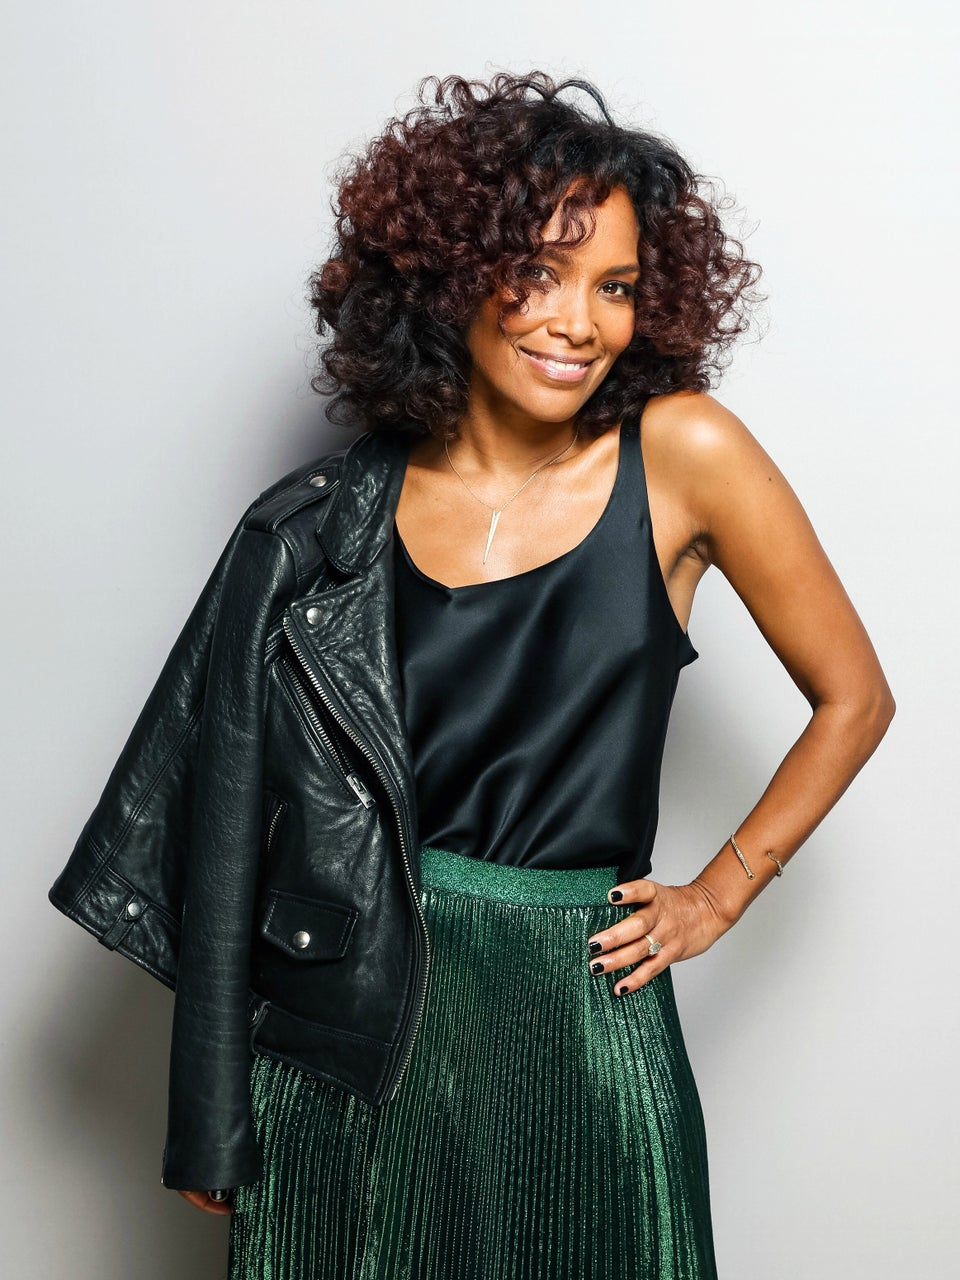 Mara Brock Akil Faced Her Biggest Fear Stepping Into The Role Of Director On Her New Show 'Love Is_', and It Changed Her